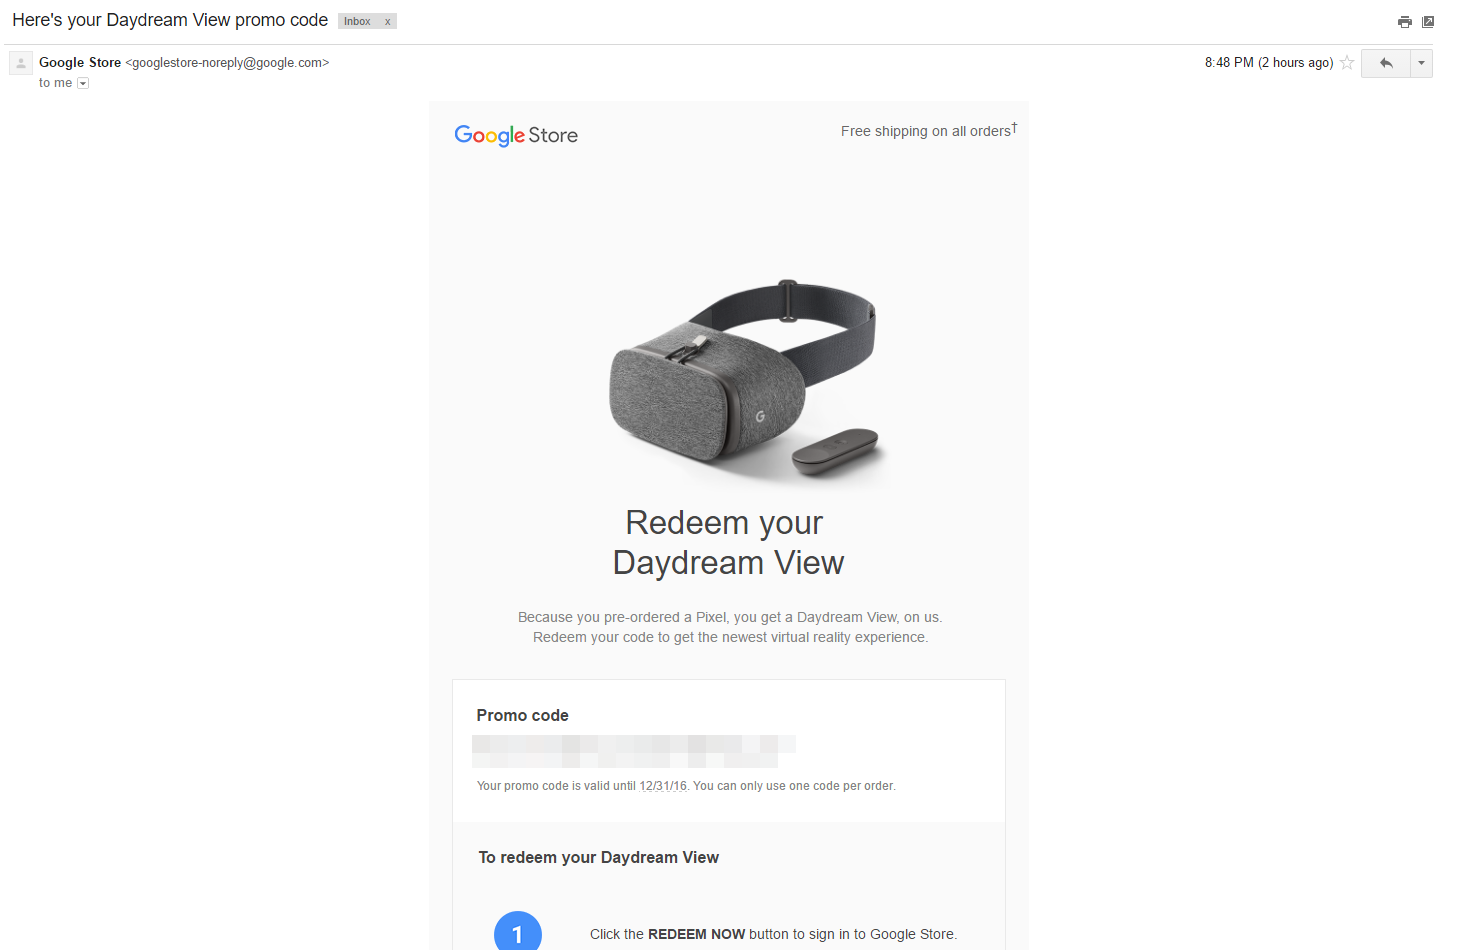 Codes for free Daydream View VR headsets are going out for